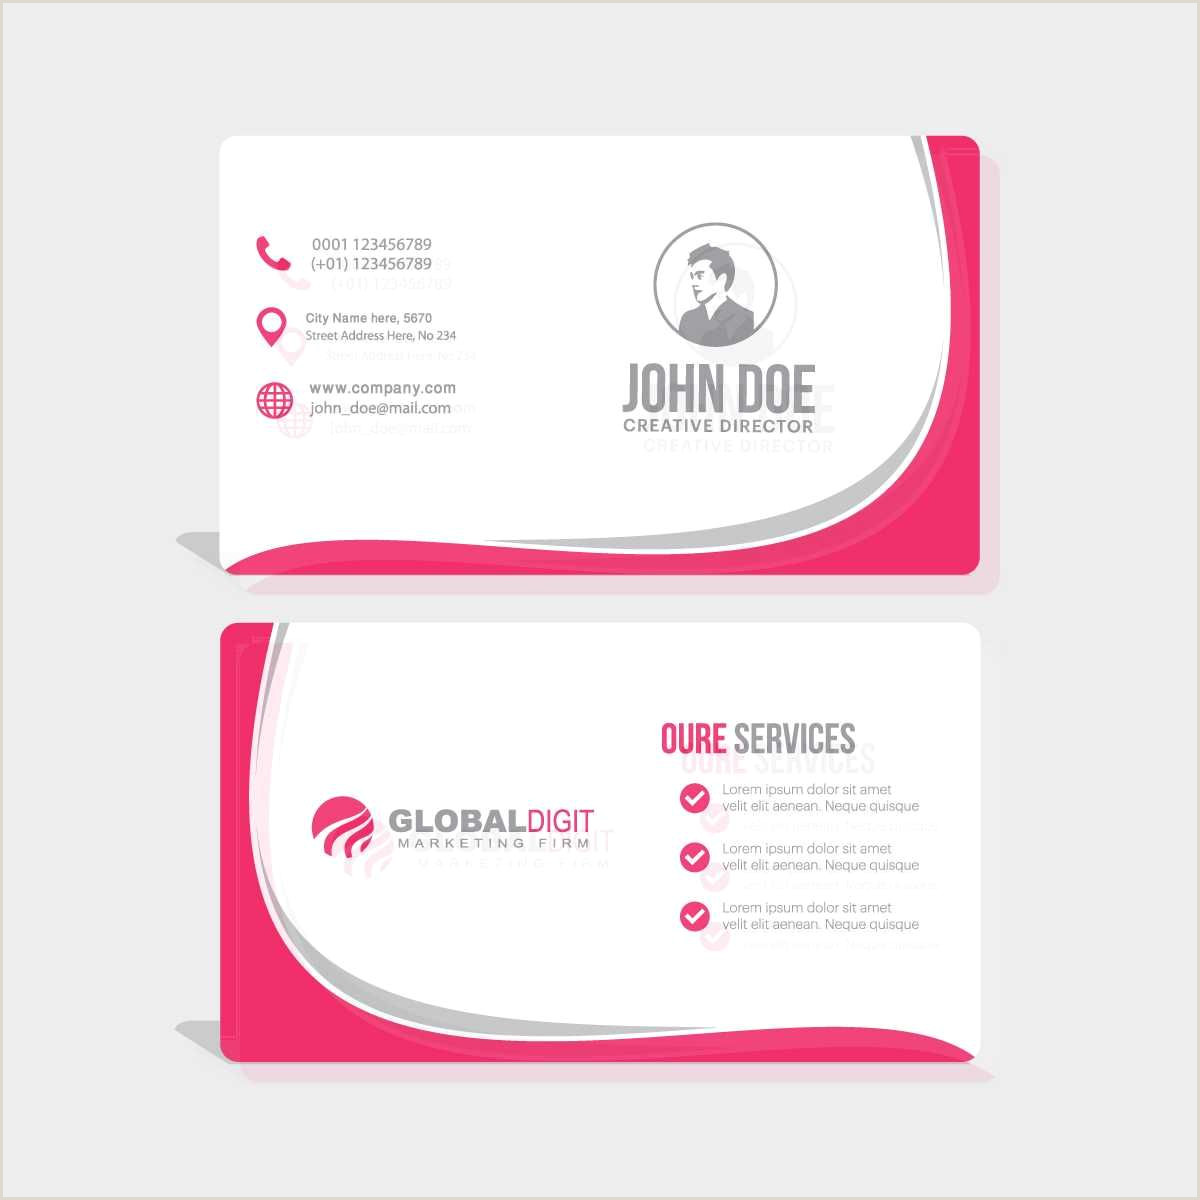 Unique Business Cards Shapes Business Card With Pink Wavy Shapes Free